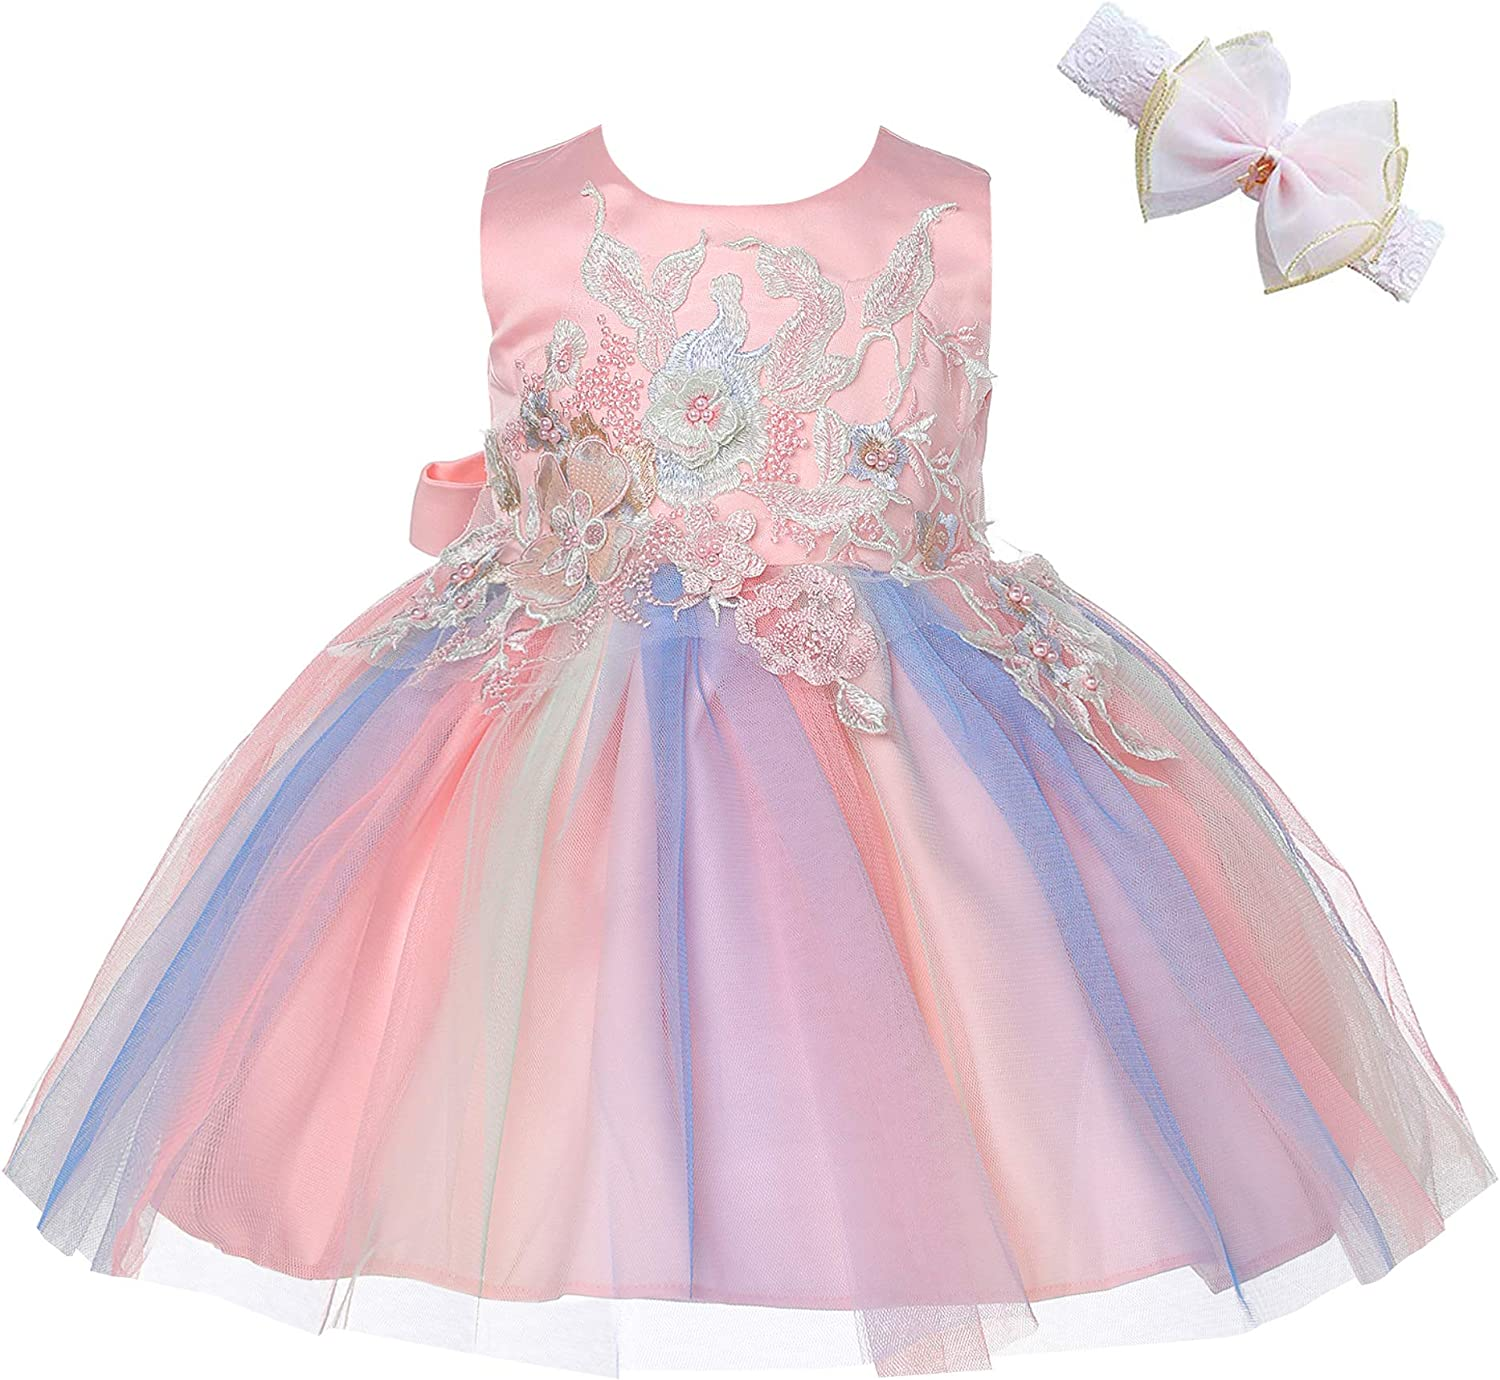 Weileenice Baby Girls Costume Cosplay Dress Pastel Tulle 6D Embroidery  Beading Princess Tutu Dresses